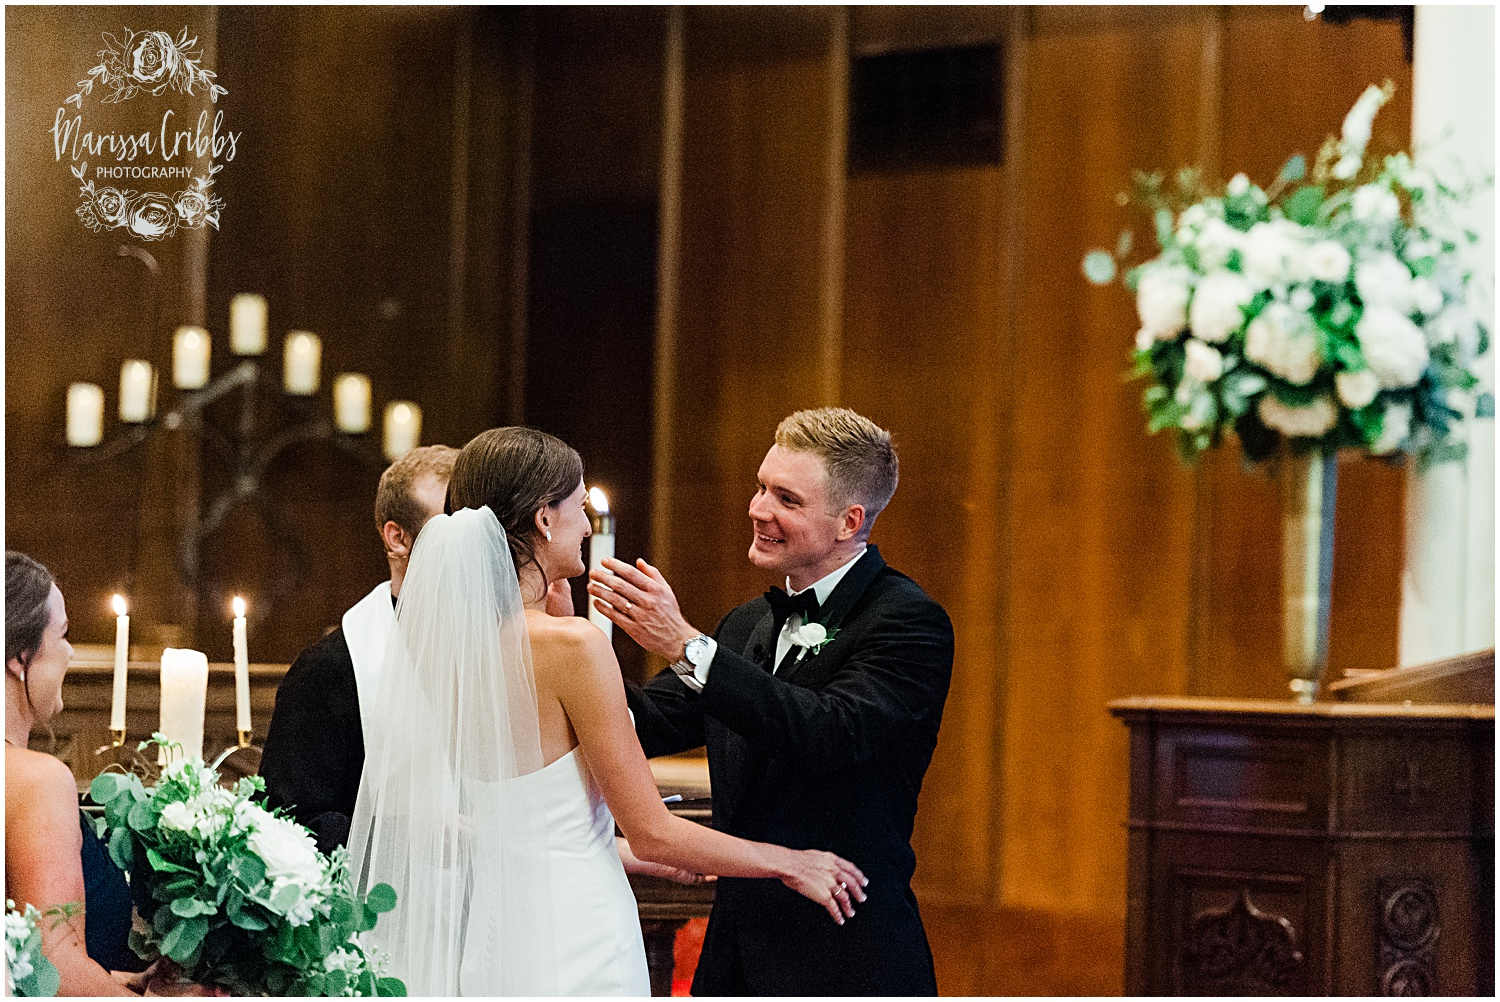 JOANNE & GEORGE MARRIED BLOG | MARISSA CRIBBS PHOTOGRAPHY | THE ABBOTT | KANSAS CITY WEDDING PHOTOS_9095.jpg